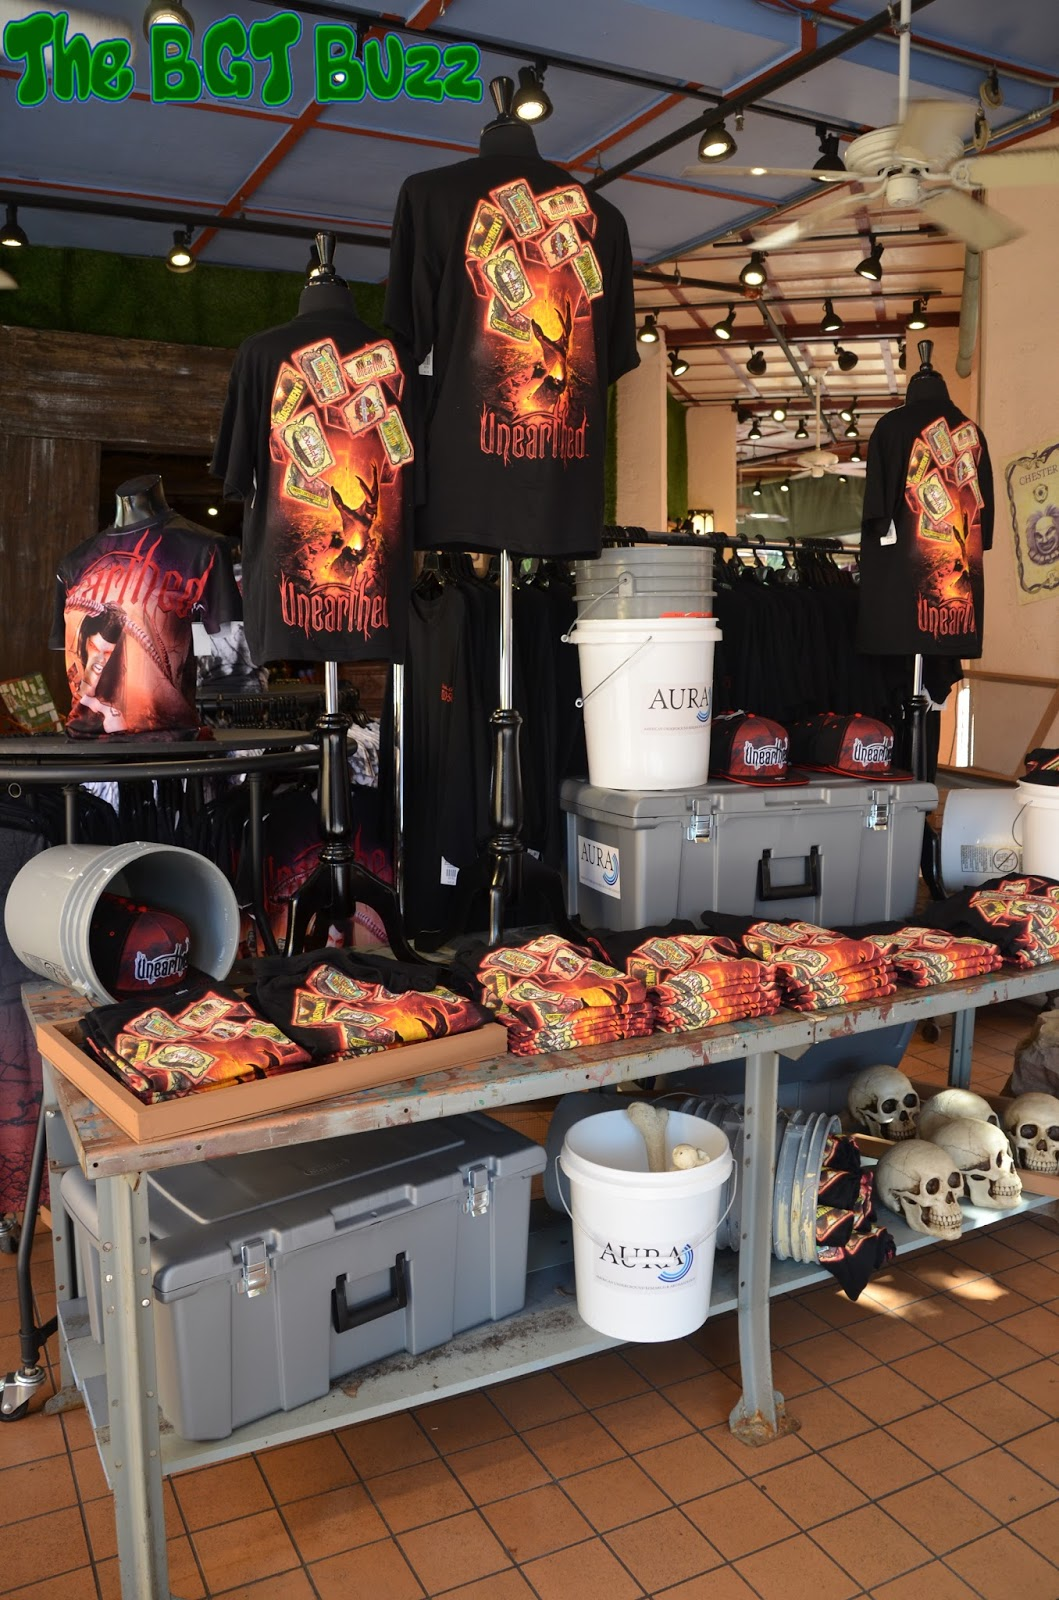 The Bgt Buzz 2015 Howl O Scream Shop Of Horrors Opens At Busch Gardens Tampa